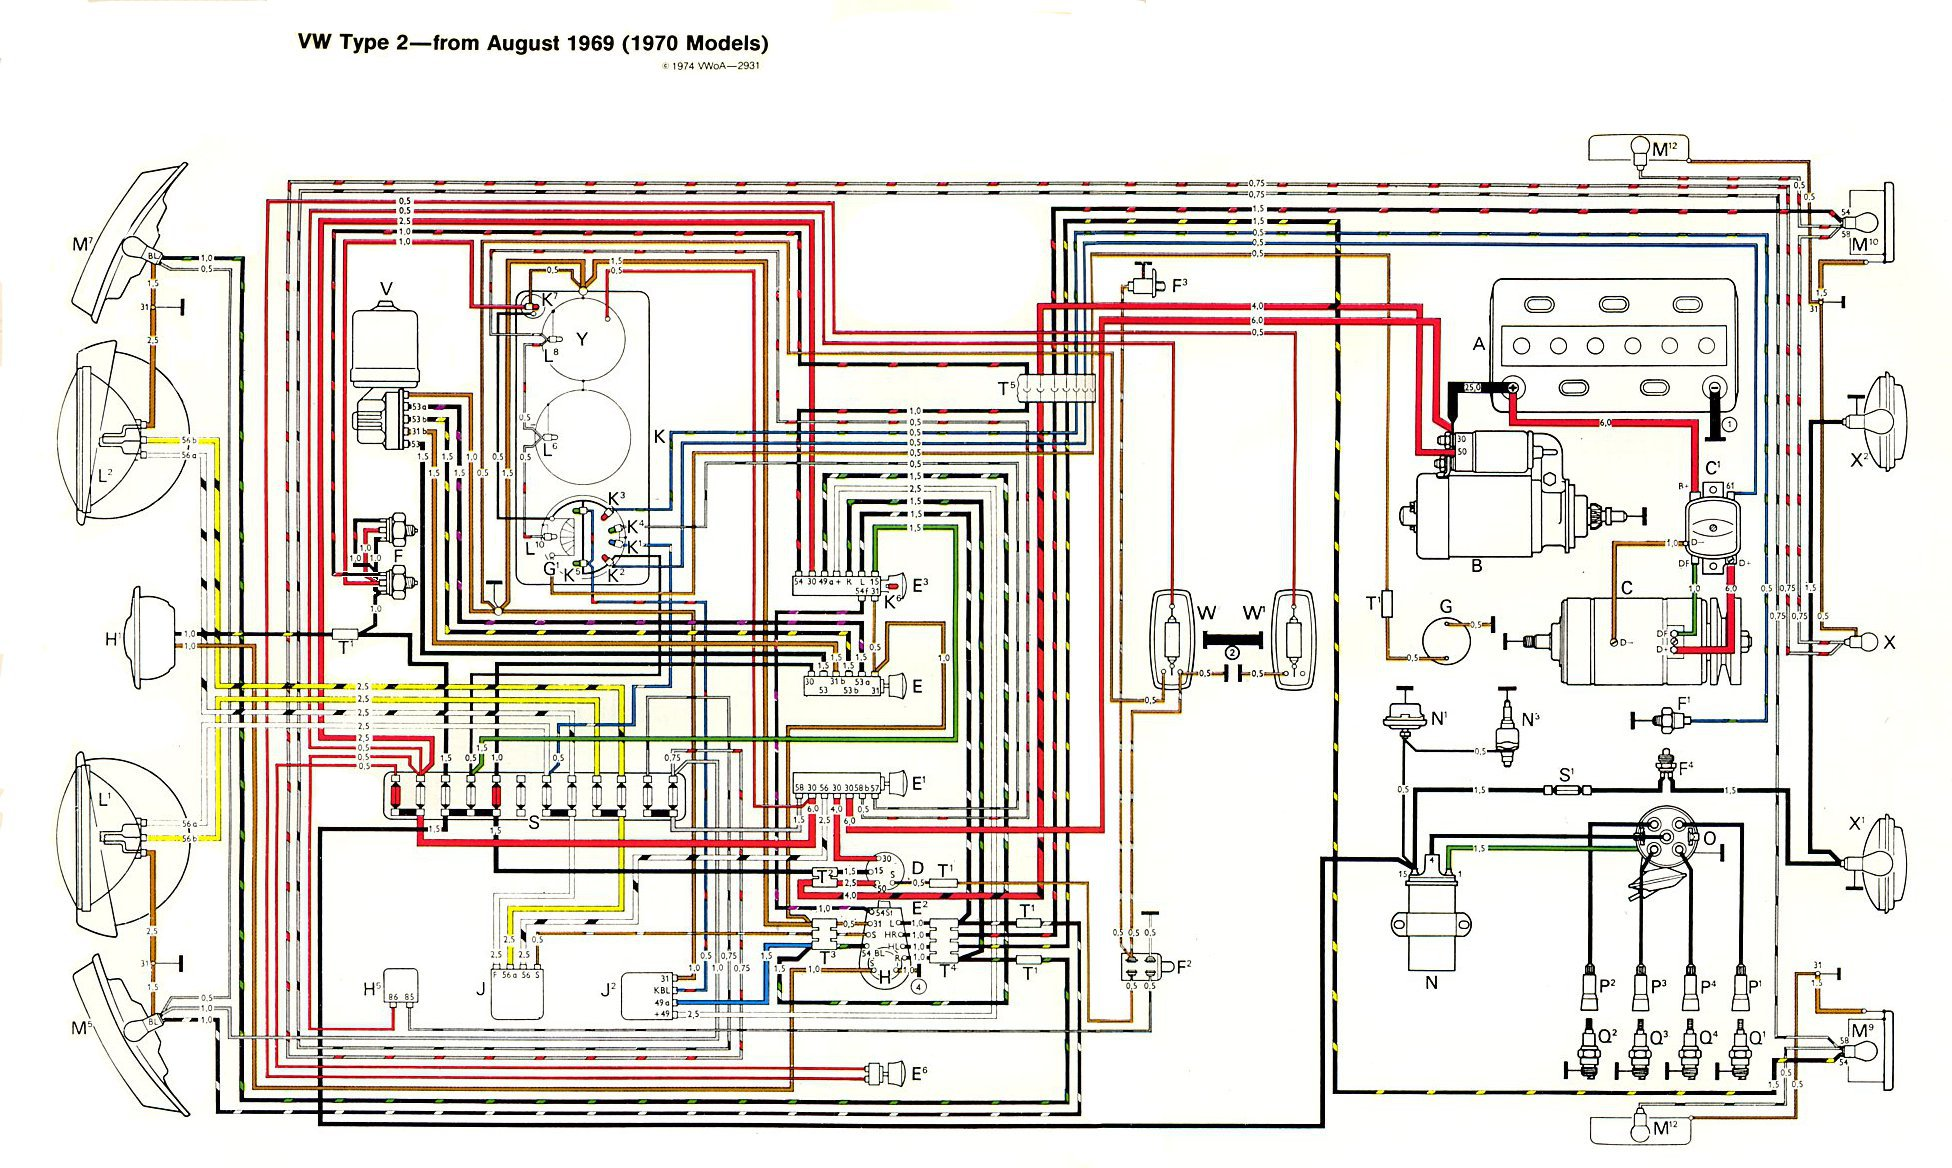 baybus_70 1974 porsche 911 wiring diagram porsche 930 turbo fuse diagram 1967 porsche 911 wiring diagram at creativeand.co